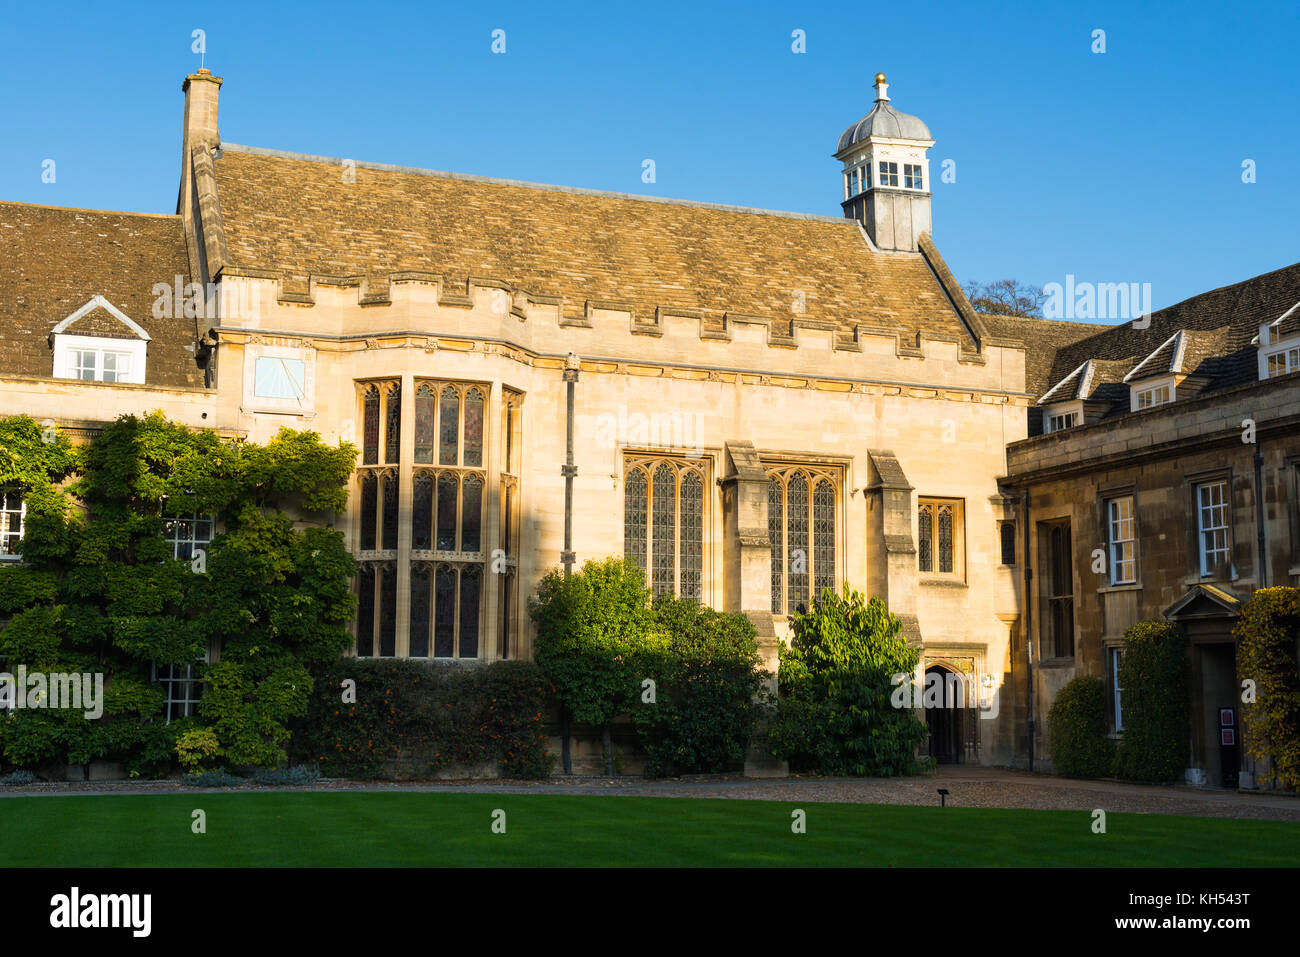 First Court building lawn Christ's College University of Cambridge England UK - Stock Image